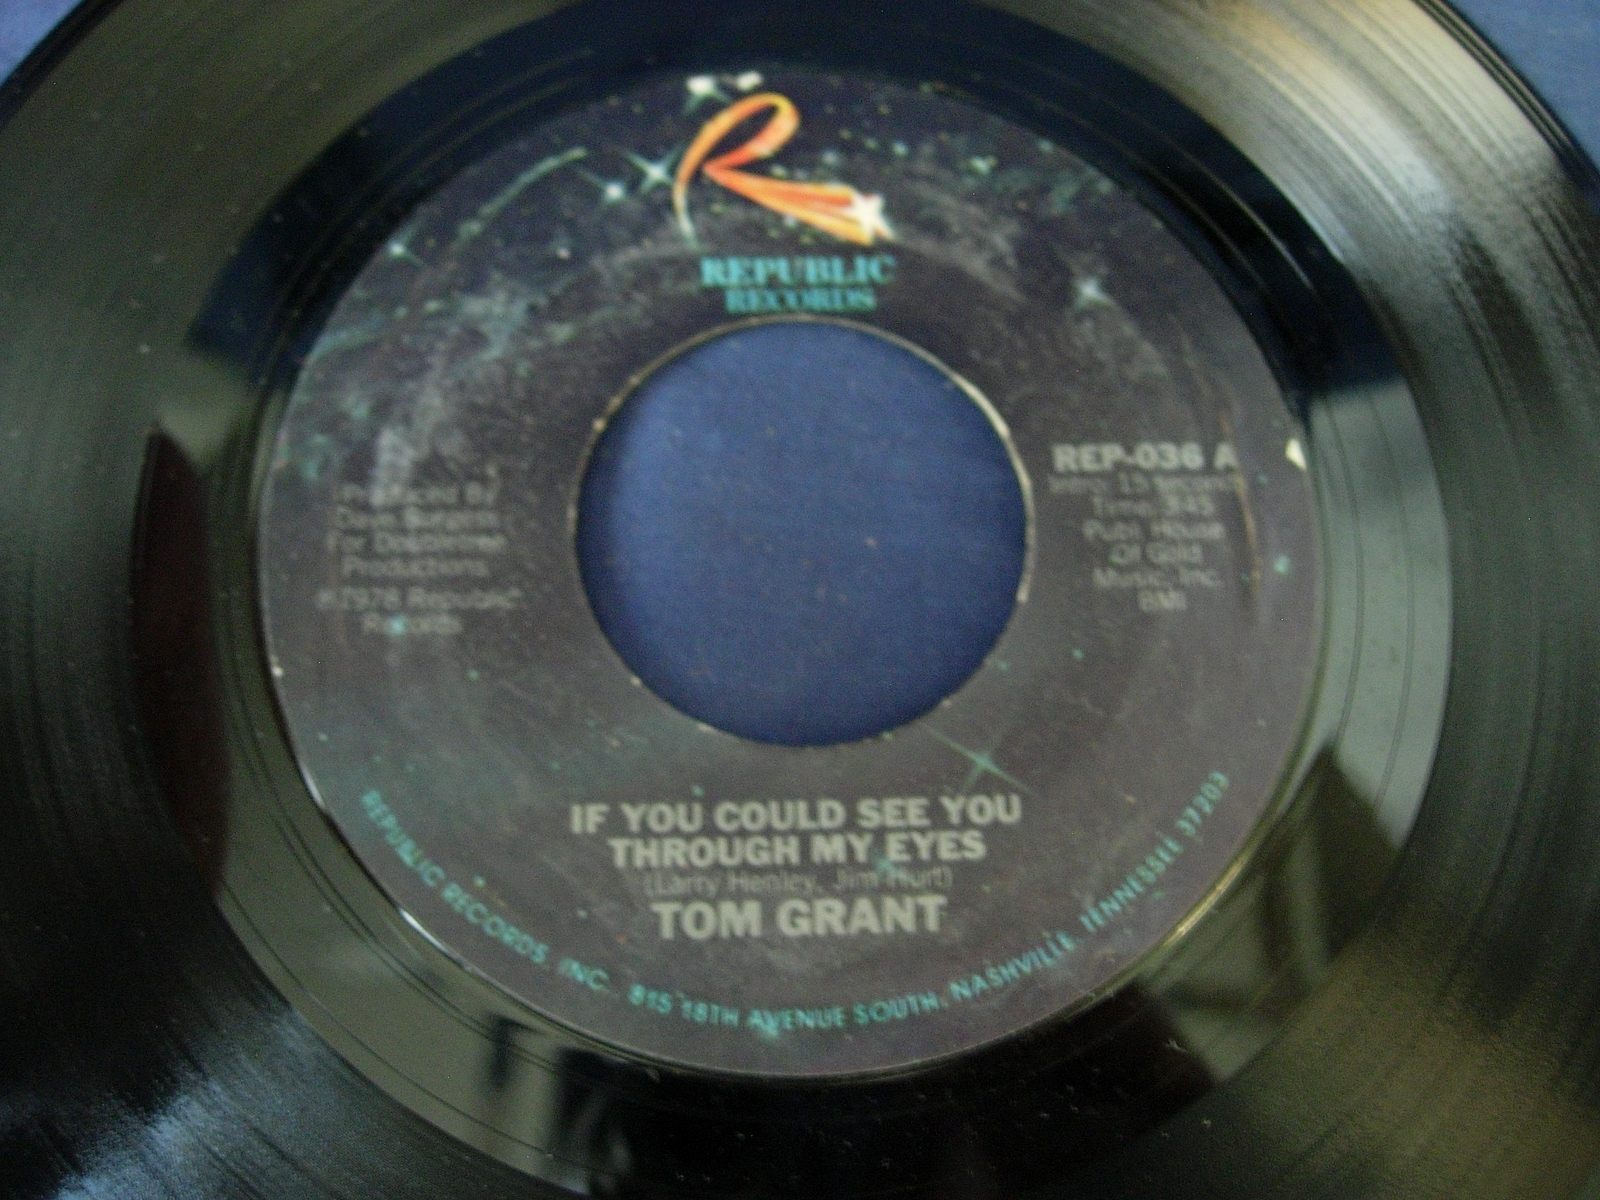 Tom Grant - If You Could See You Through My Eyes - Republic Records REP-036